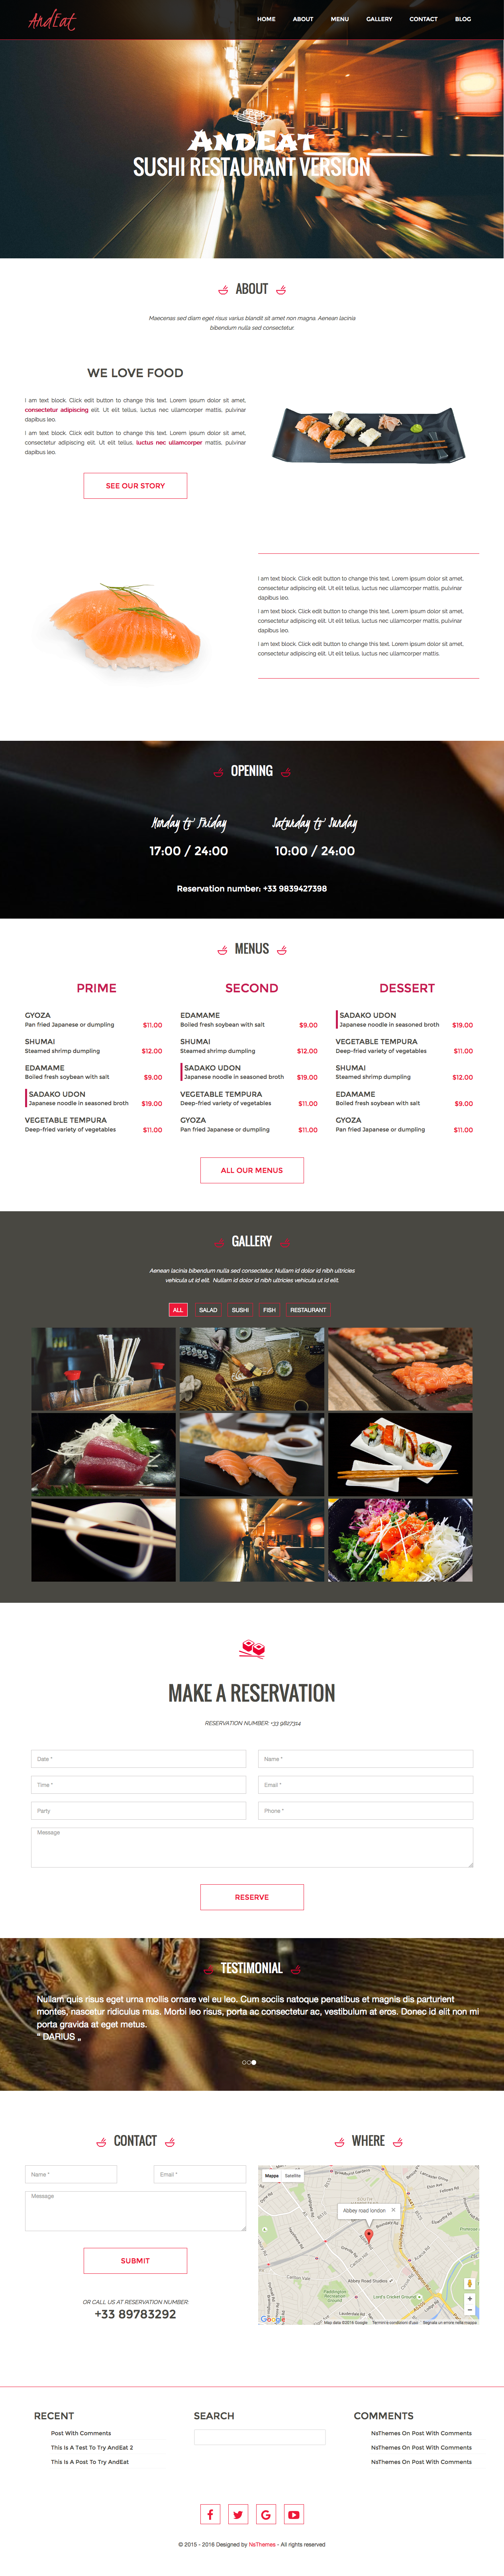 AndEat – Sushi style